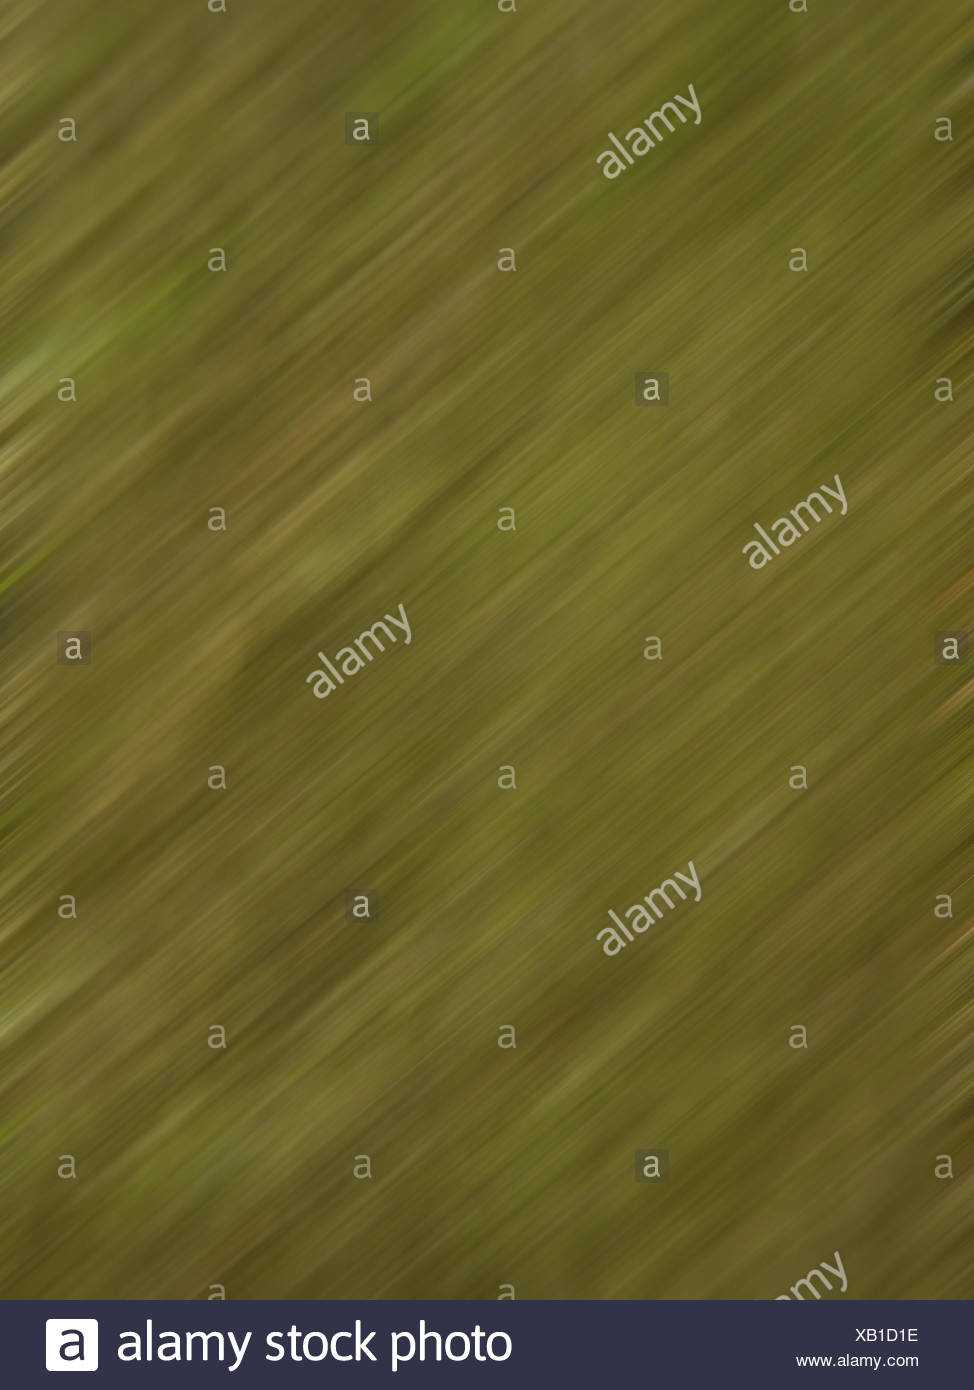 green, blurs, abstract, weatherworn, smudge, backdrop, background, green, - Stock Image